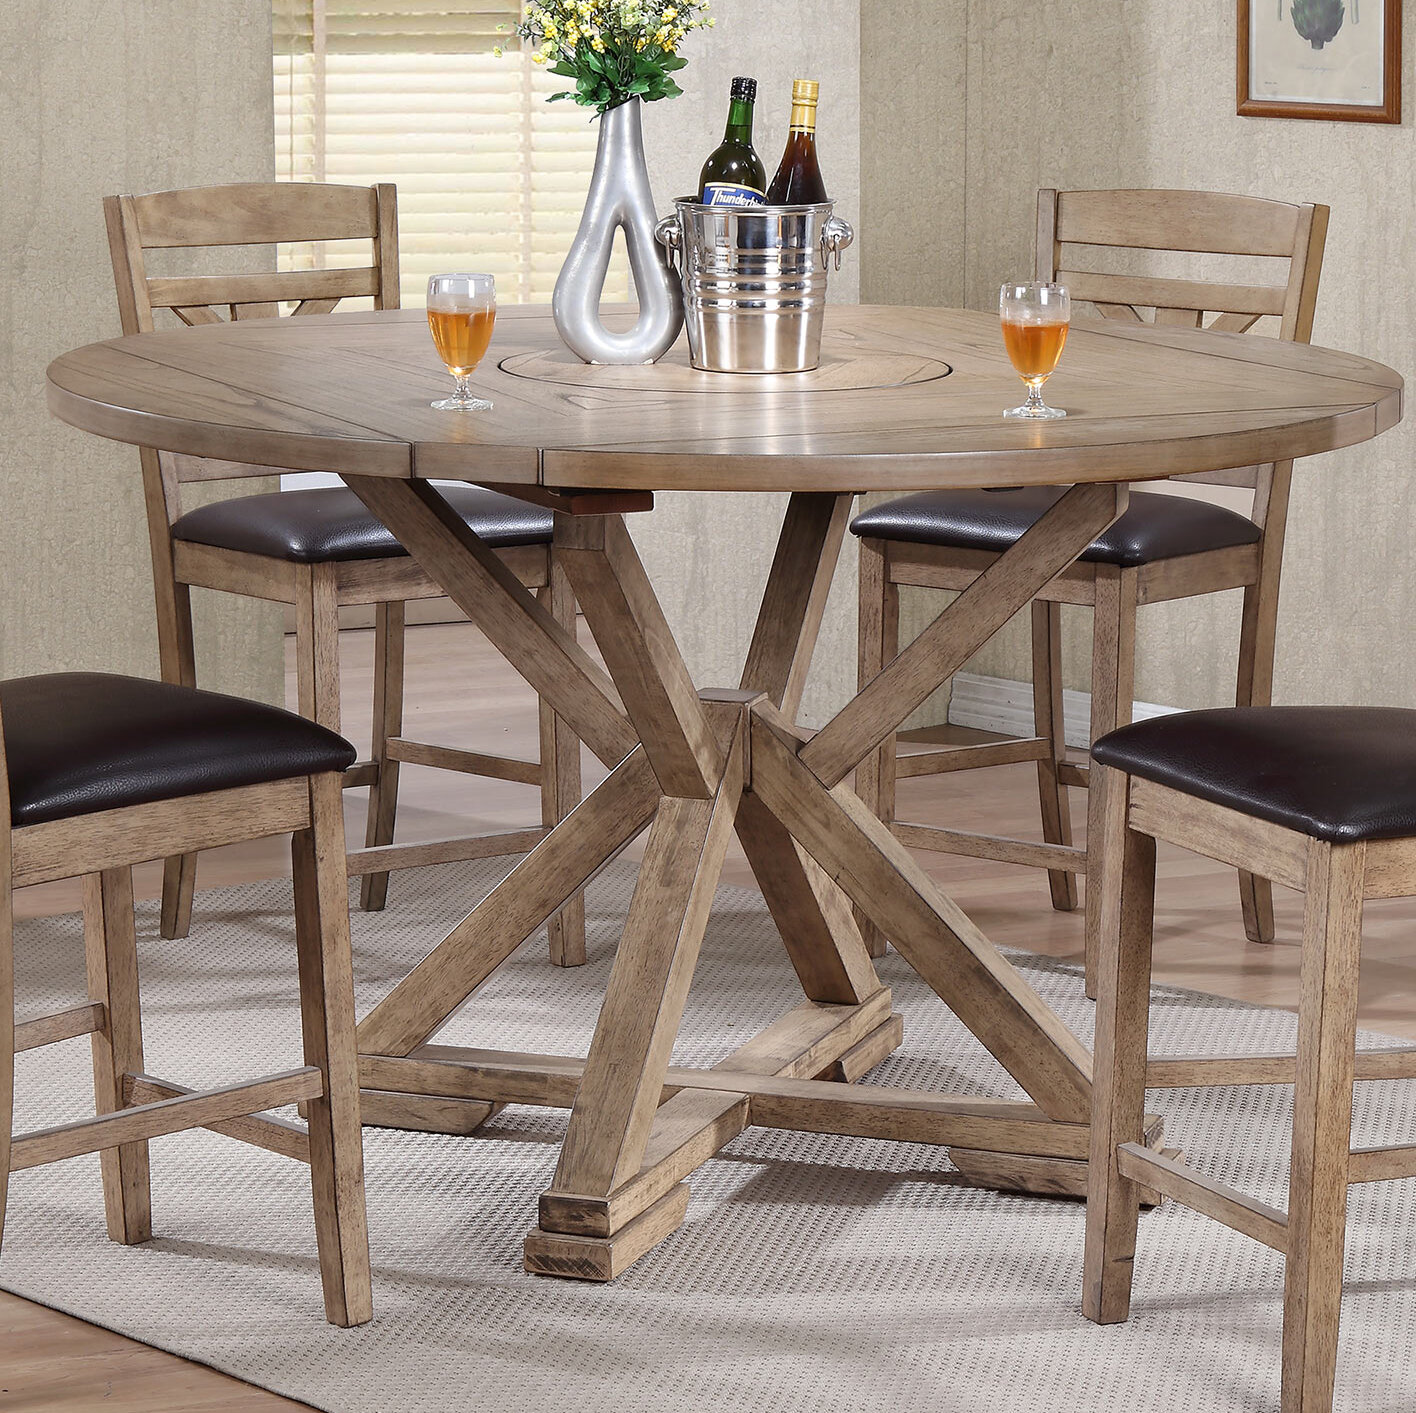 60 Inches Drop Leaf Kitchen Dining Tables You Ll Love In 2021 Wayfair